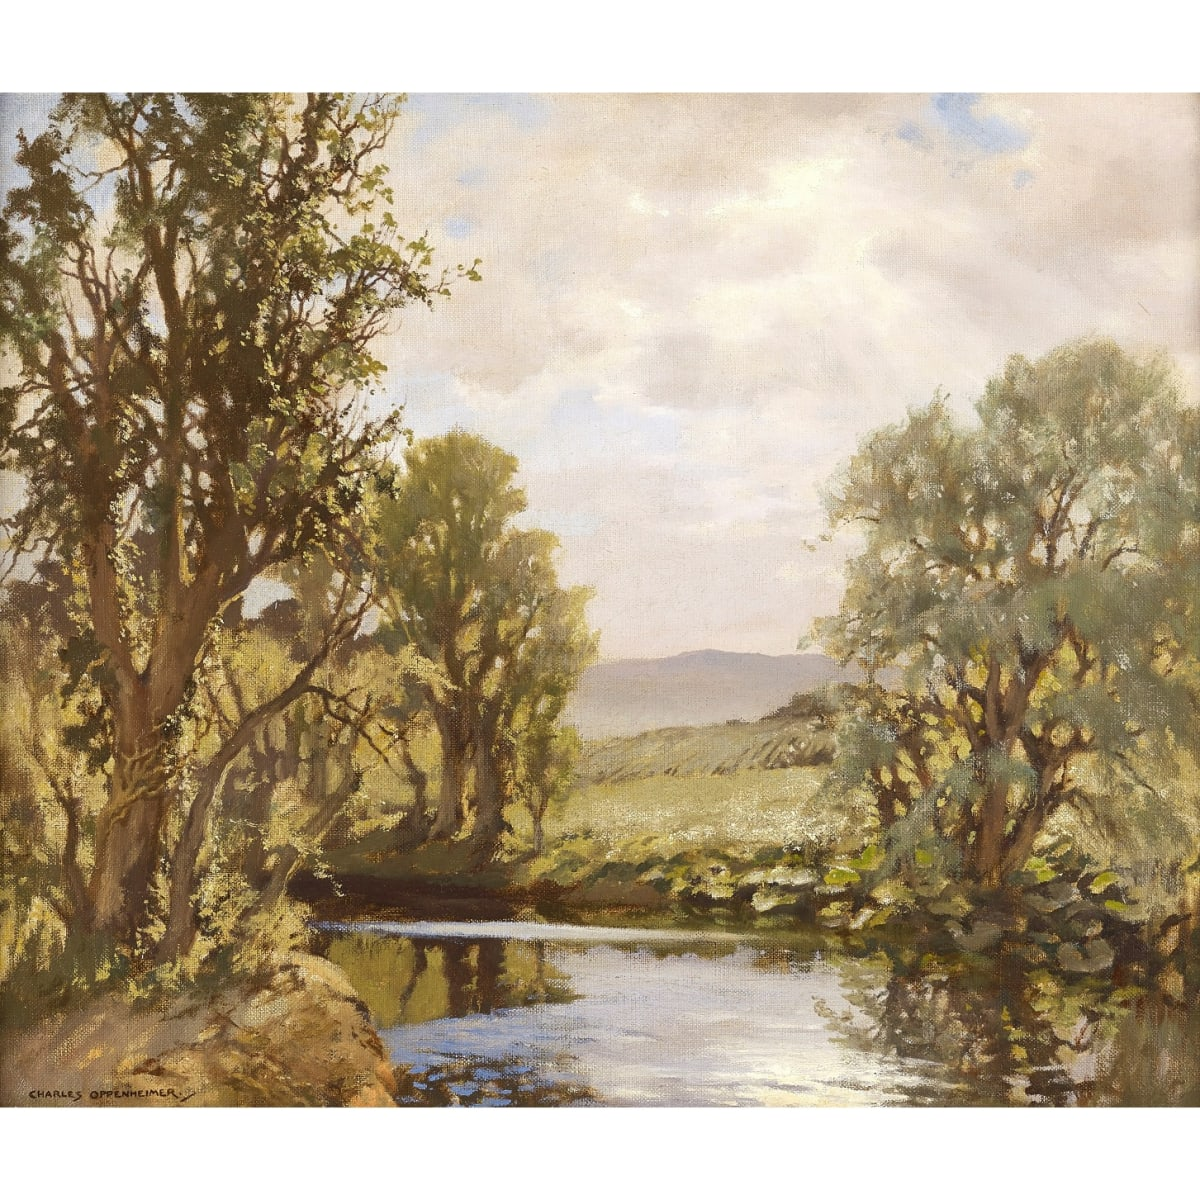 Charles Oppenheimer Water Meadows, 1954 signed; signed and titled on artist's label verso oil on canvas board 19 1/2 x 23 1/2 inches